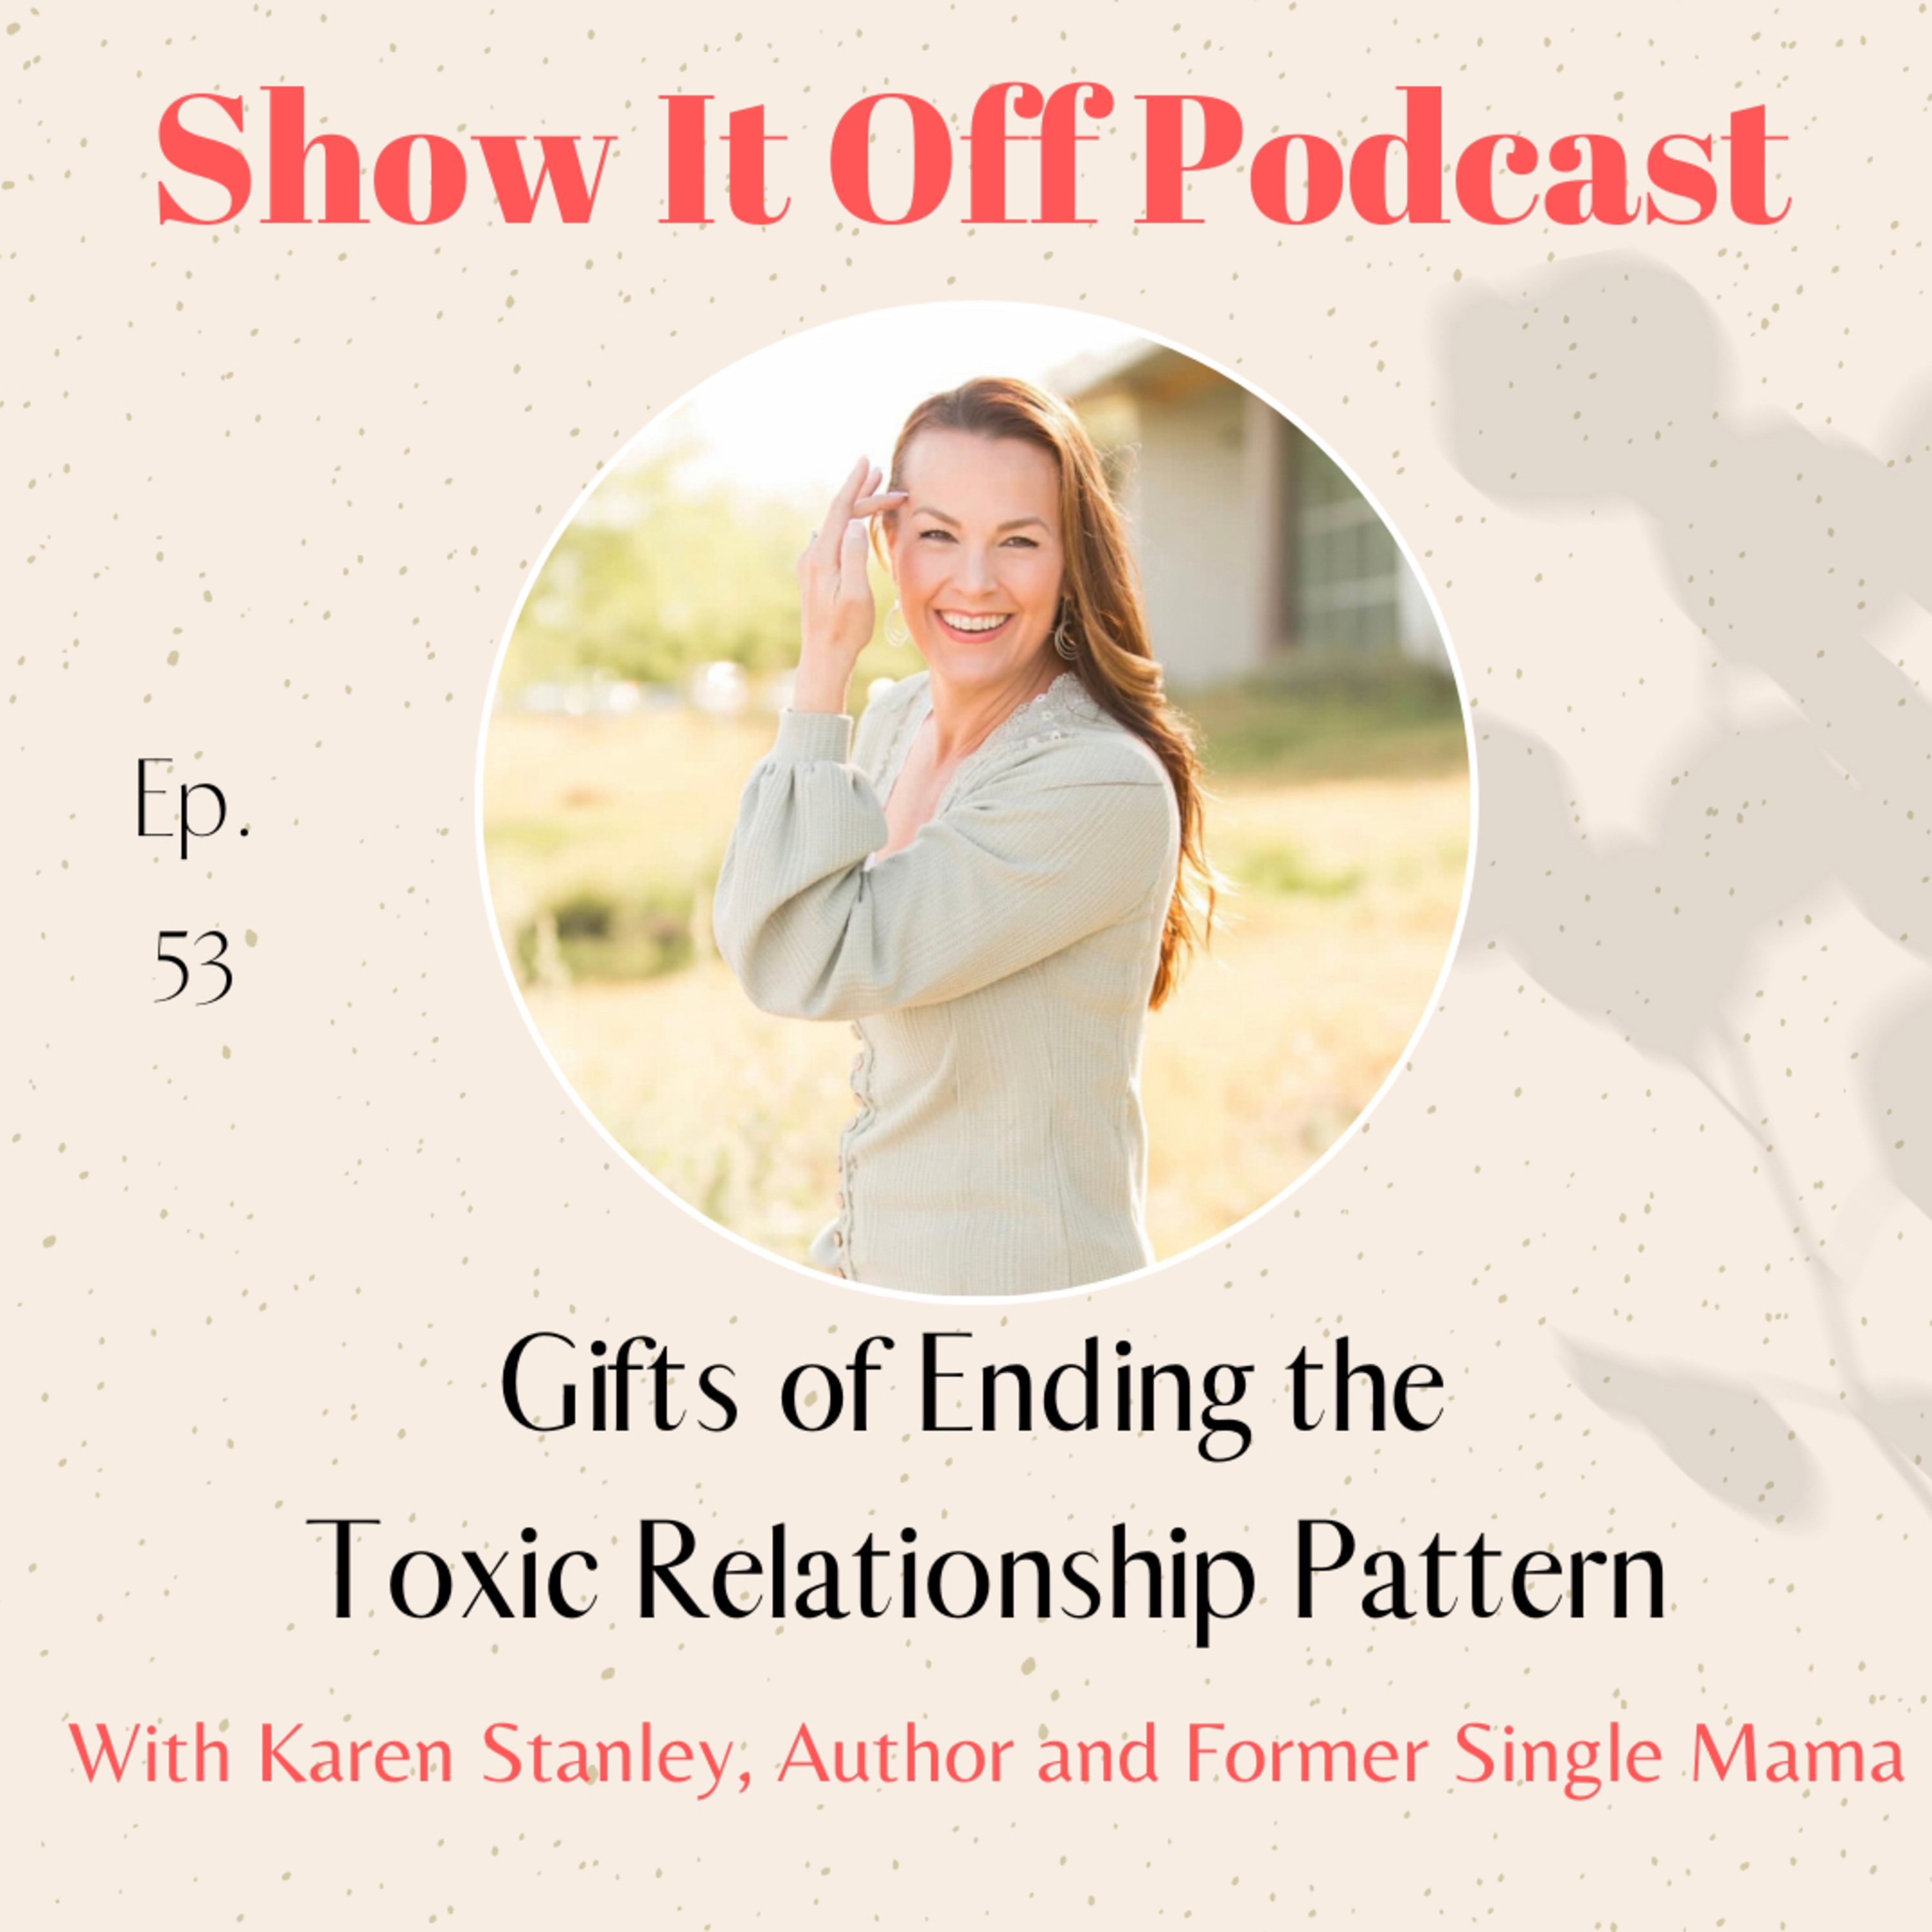 Gifts of Ending the Toxic Relationship Pattern with Author and Former Single Mama, Karen Stanley